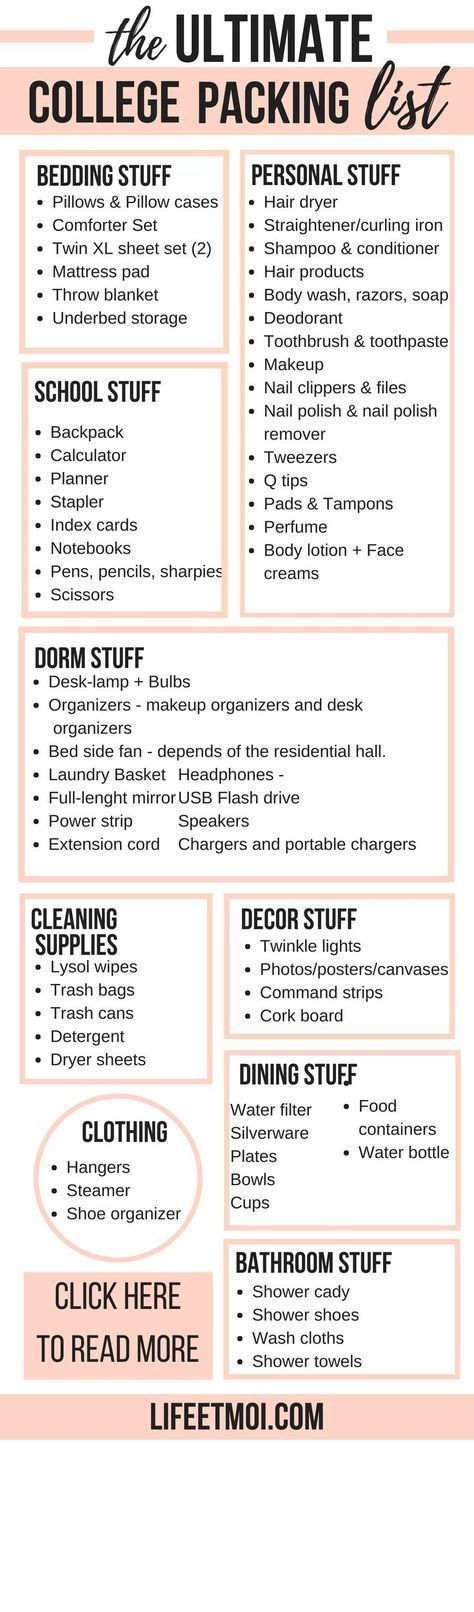 Especially if you're an incoming freshman knowing what to pack for college   2019  Especially if you're an incoming freshman knowing what to pack for college can be daunting. Which is why packing is stressful but as stressful as realizing you forgot to pack something really important. So I created this college packing list that contains absolutely everything you will need for college.  The post Especially if you're an incoming freshman knowing what to pack for college   2019 appeared first on Ap #collegepackinglist